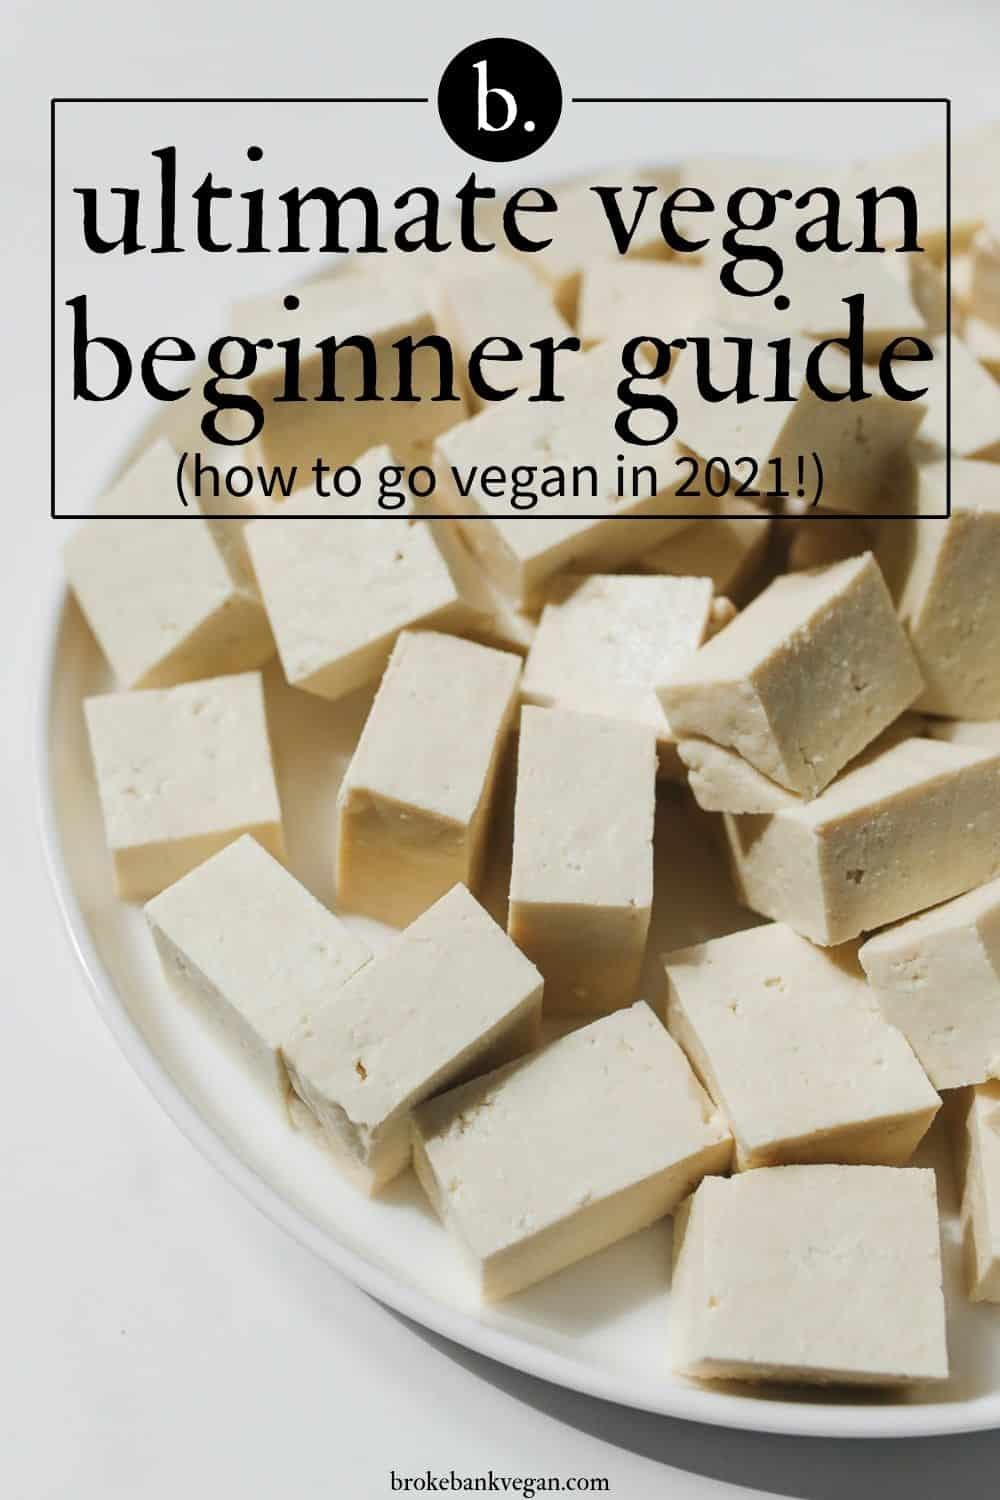 Ultimate Vegan Beginner Guide